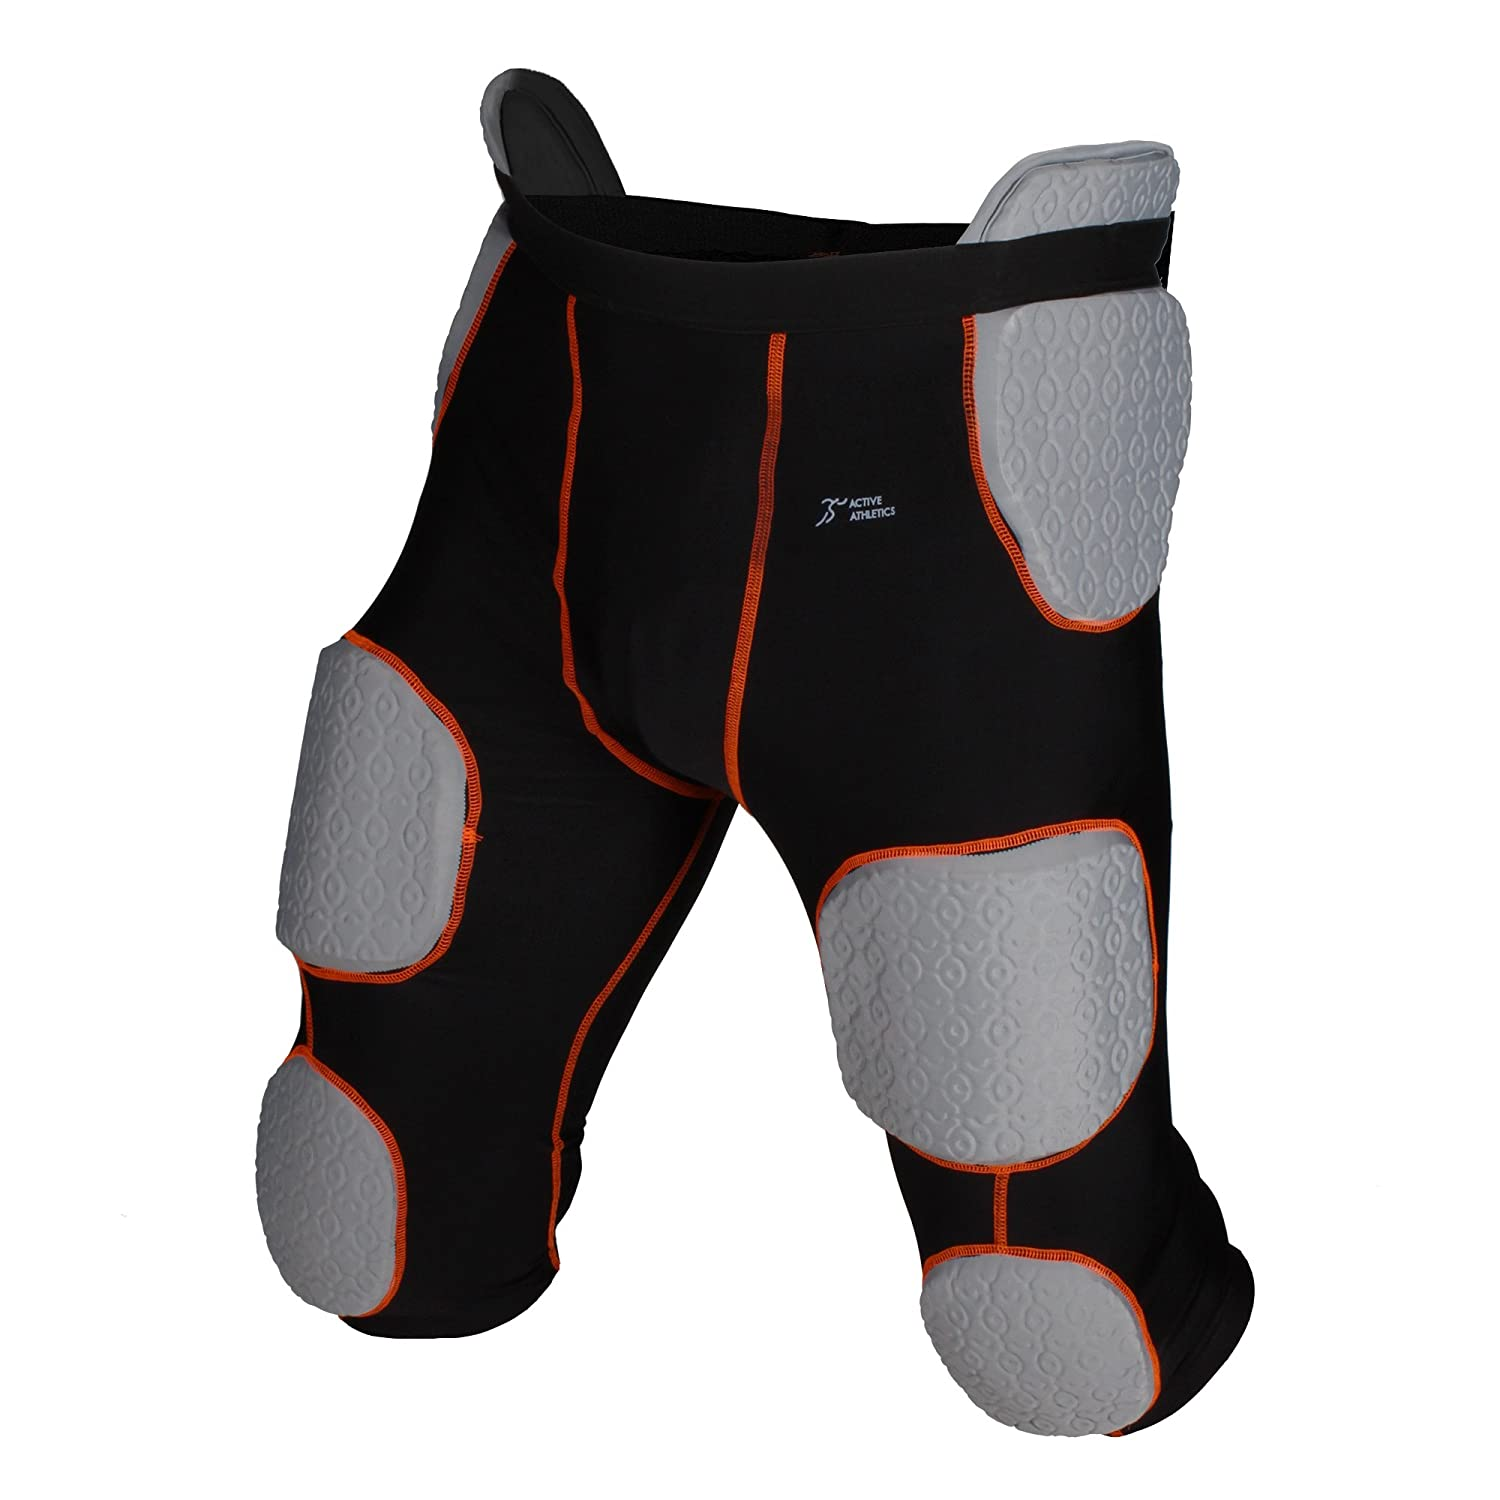 Active Athletics American football briefs with 7integrated pads, black